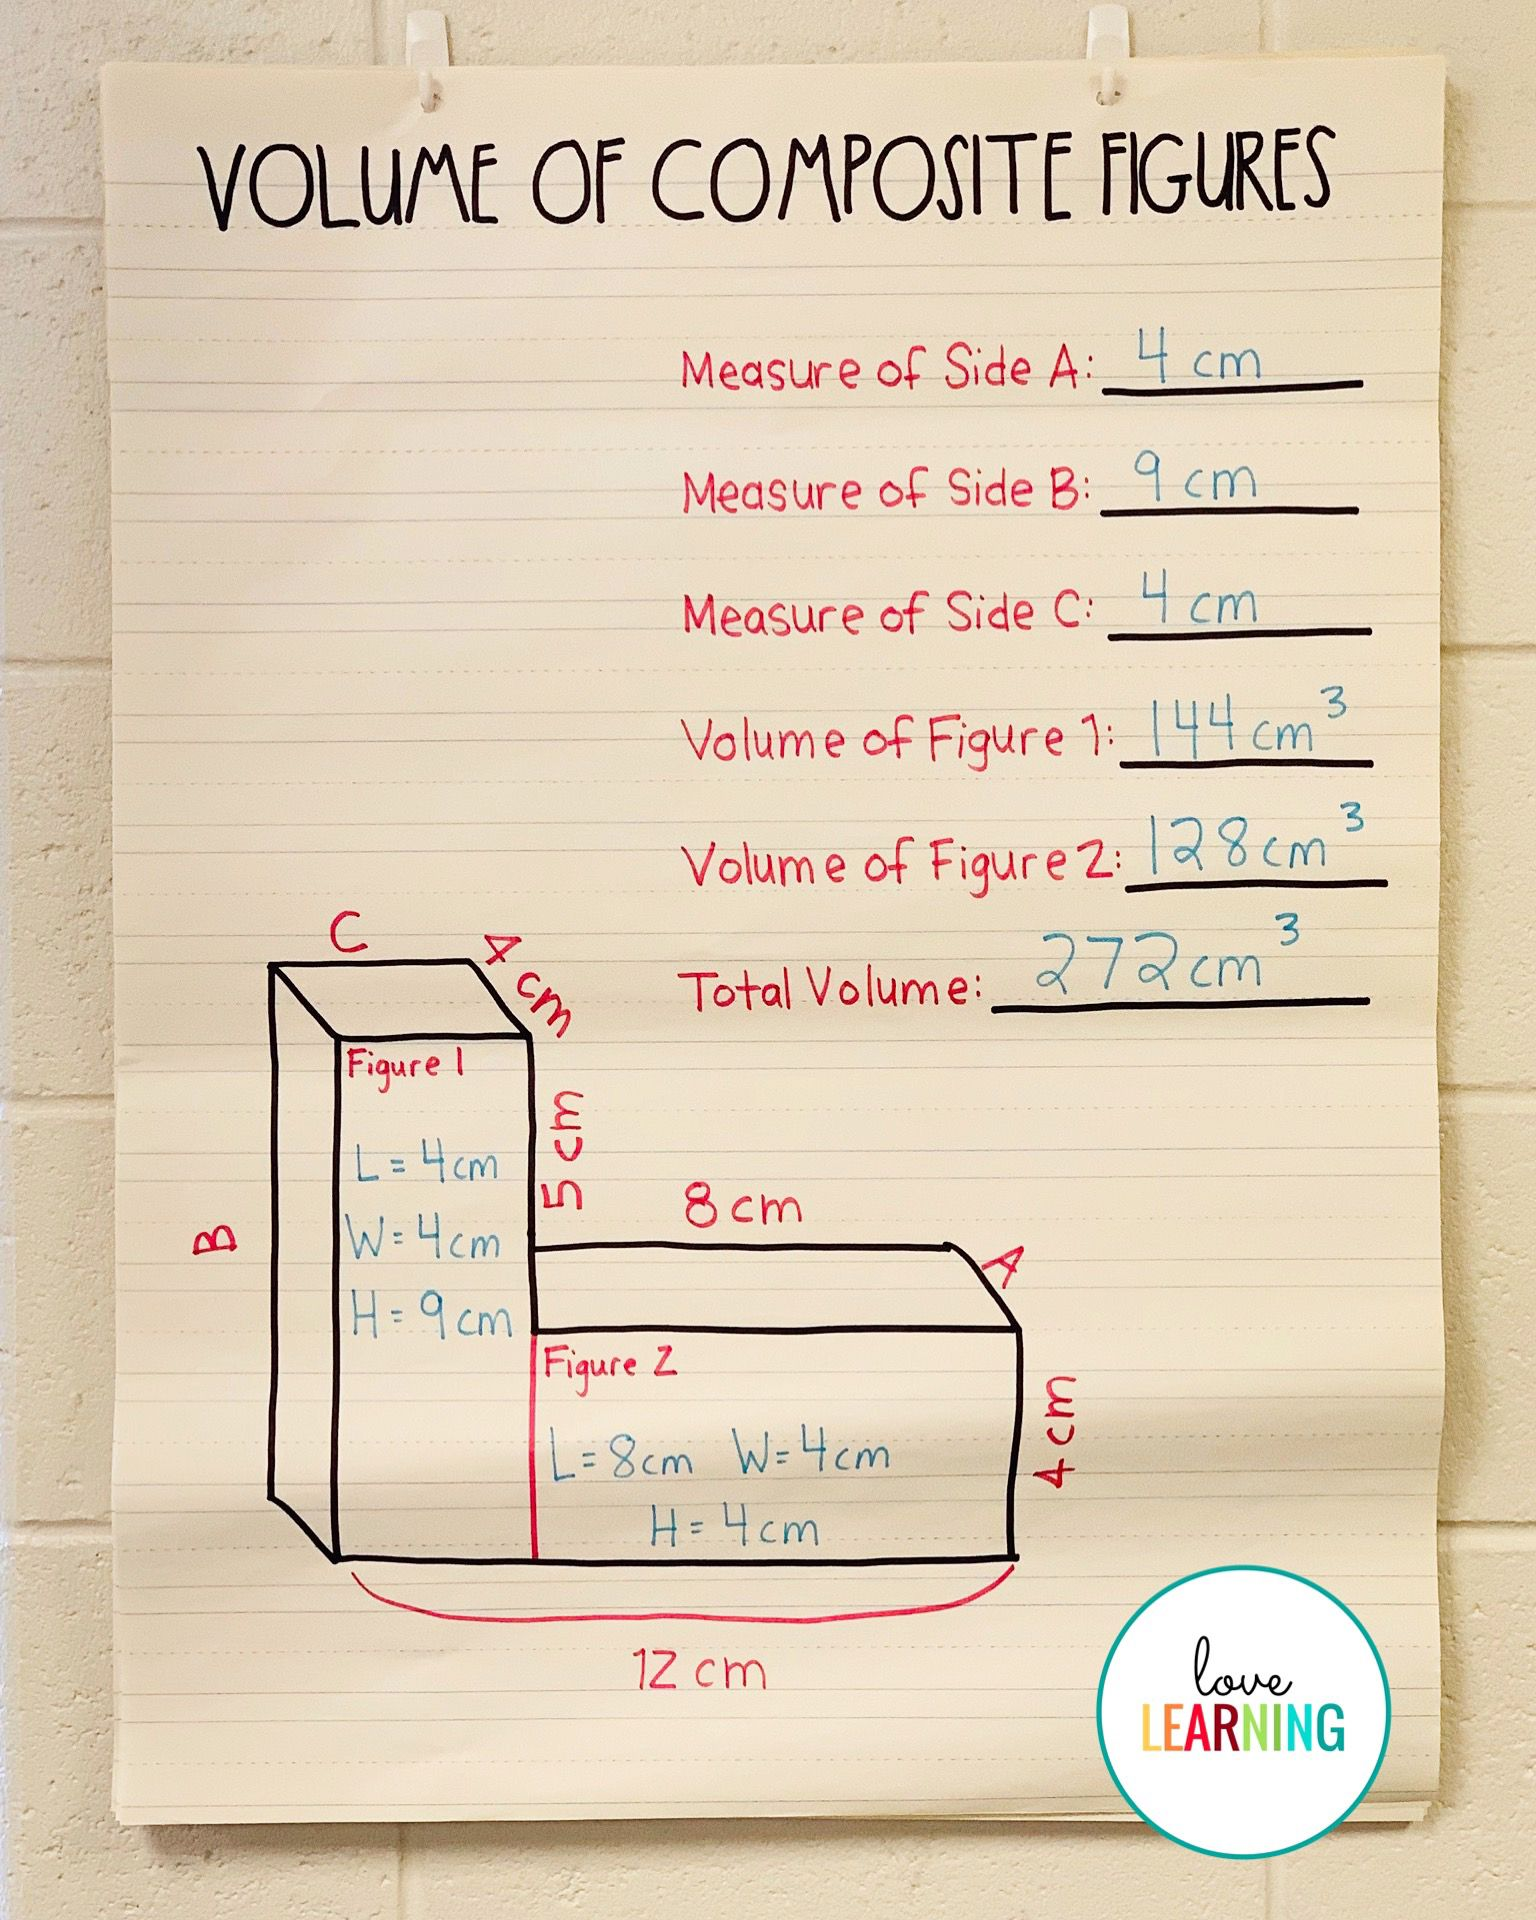 Teach Child How To Read Volume Of Composite Figures